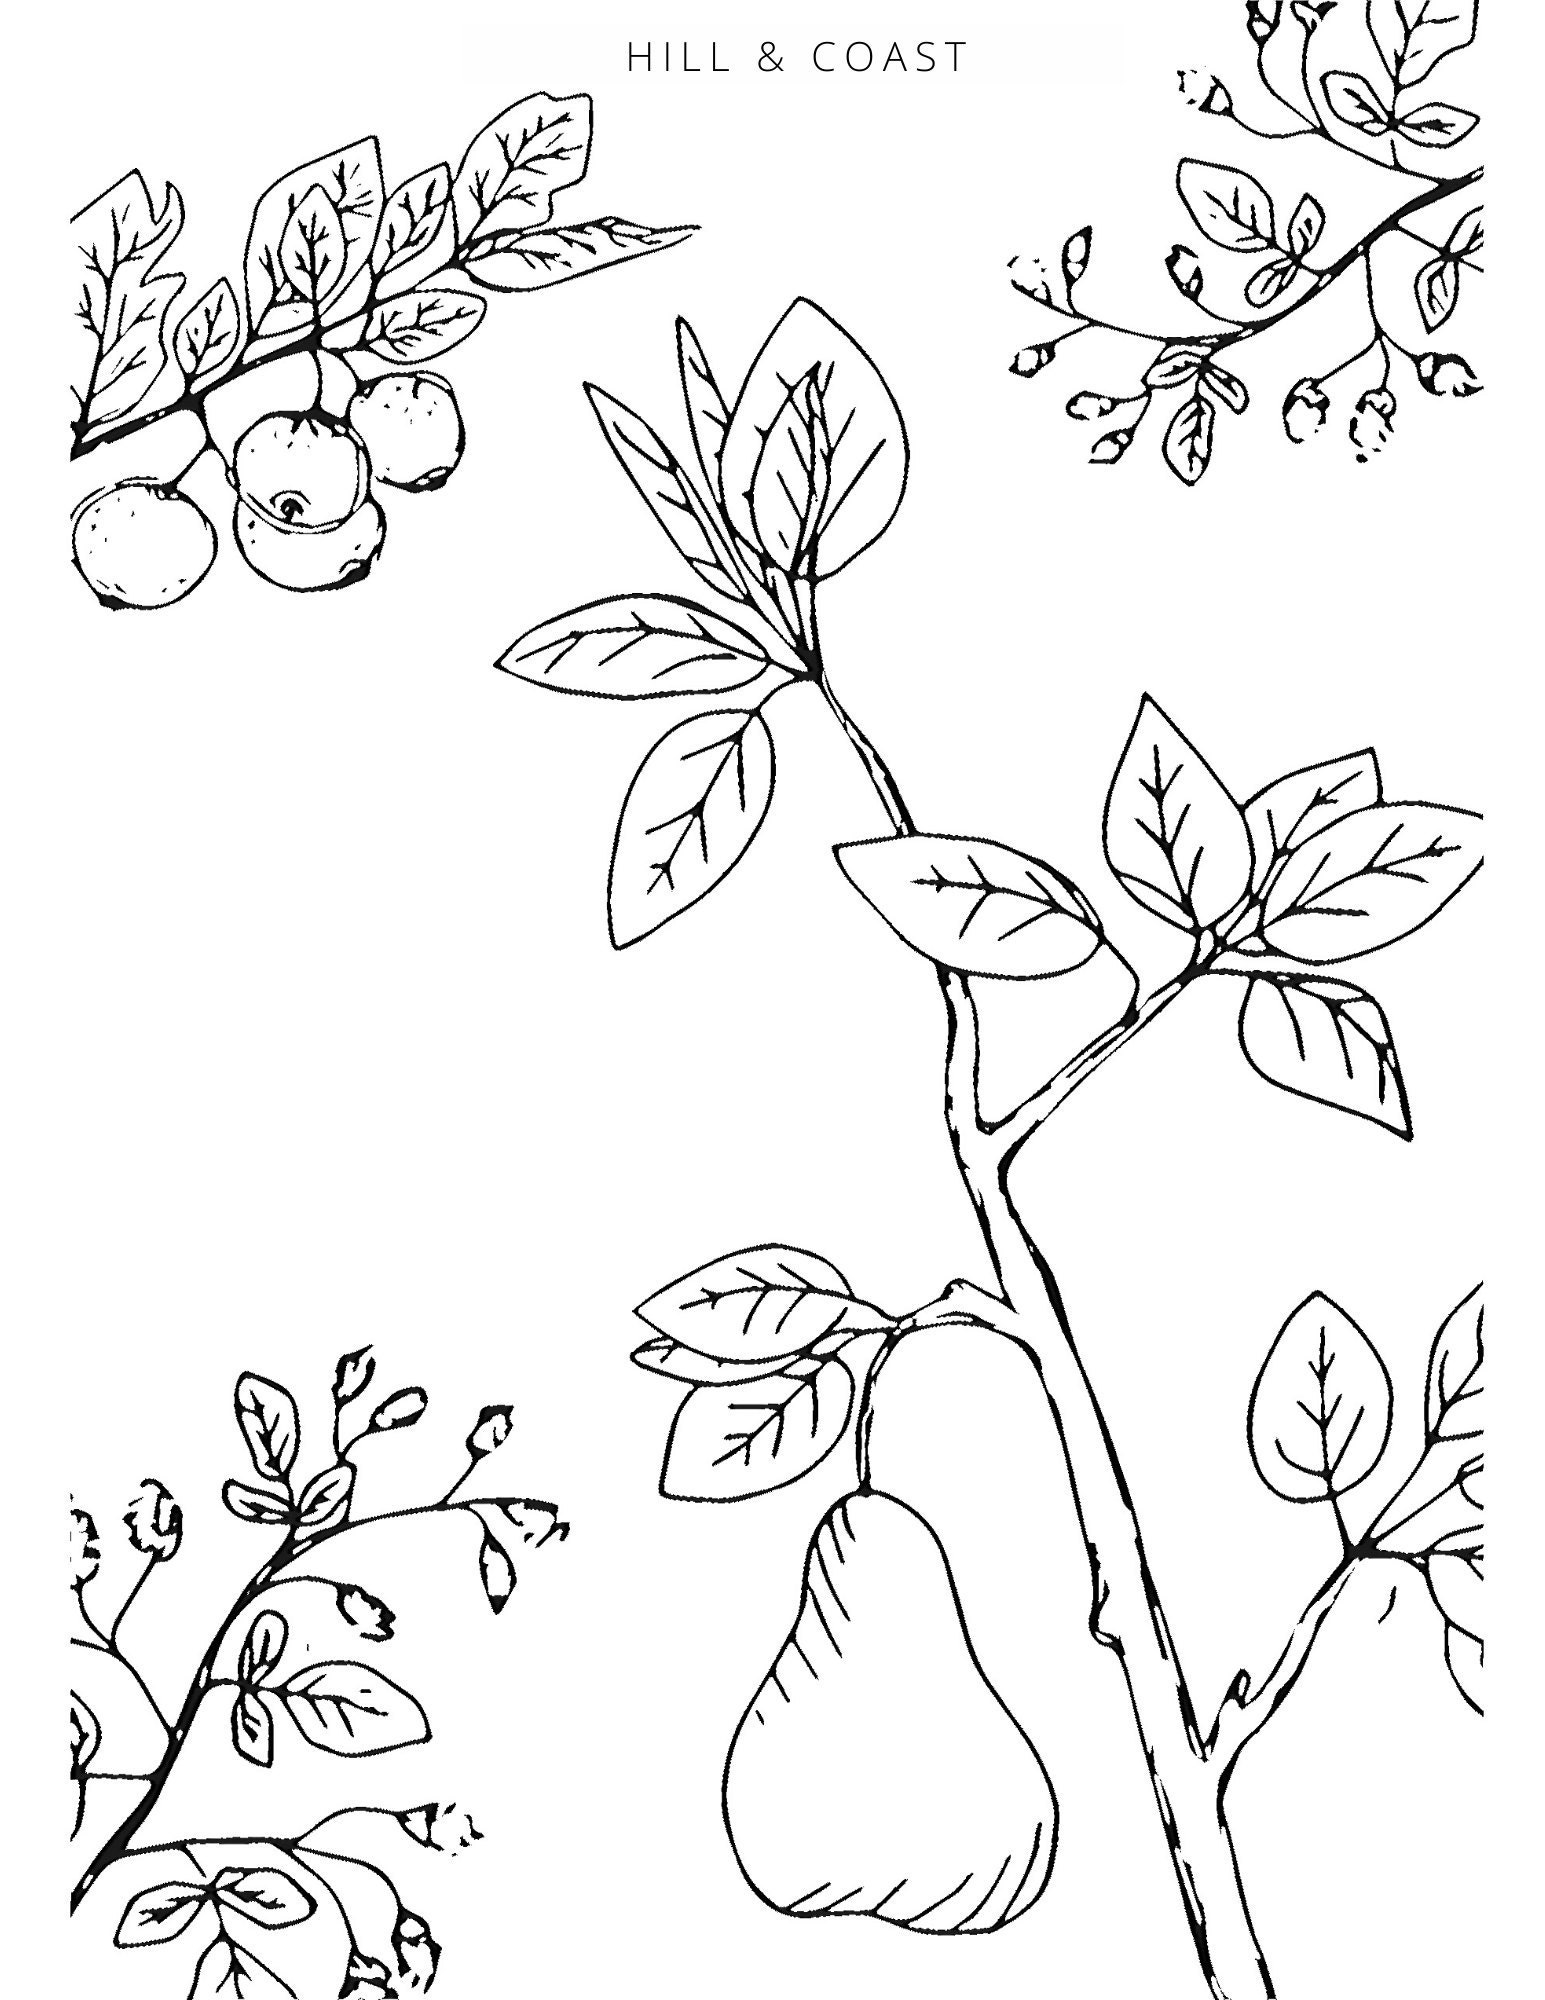 Peace Pears Coloring Page, by Hill & Coast